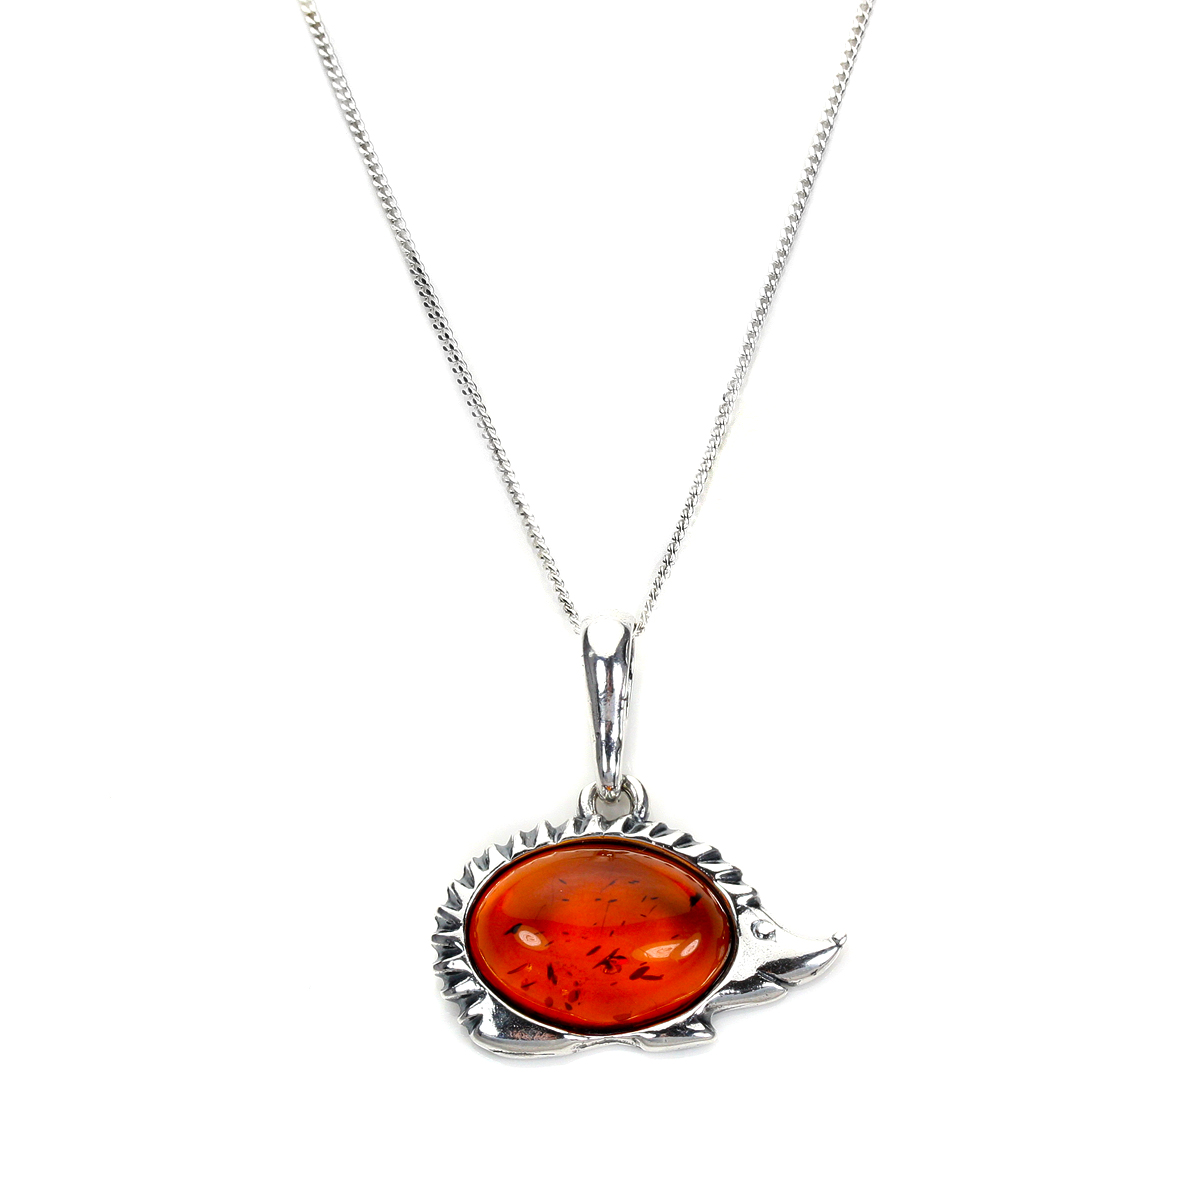 An image of Sterling Silver Baltic Amber Hedgehog Pendant on 14 Inch Chain